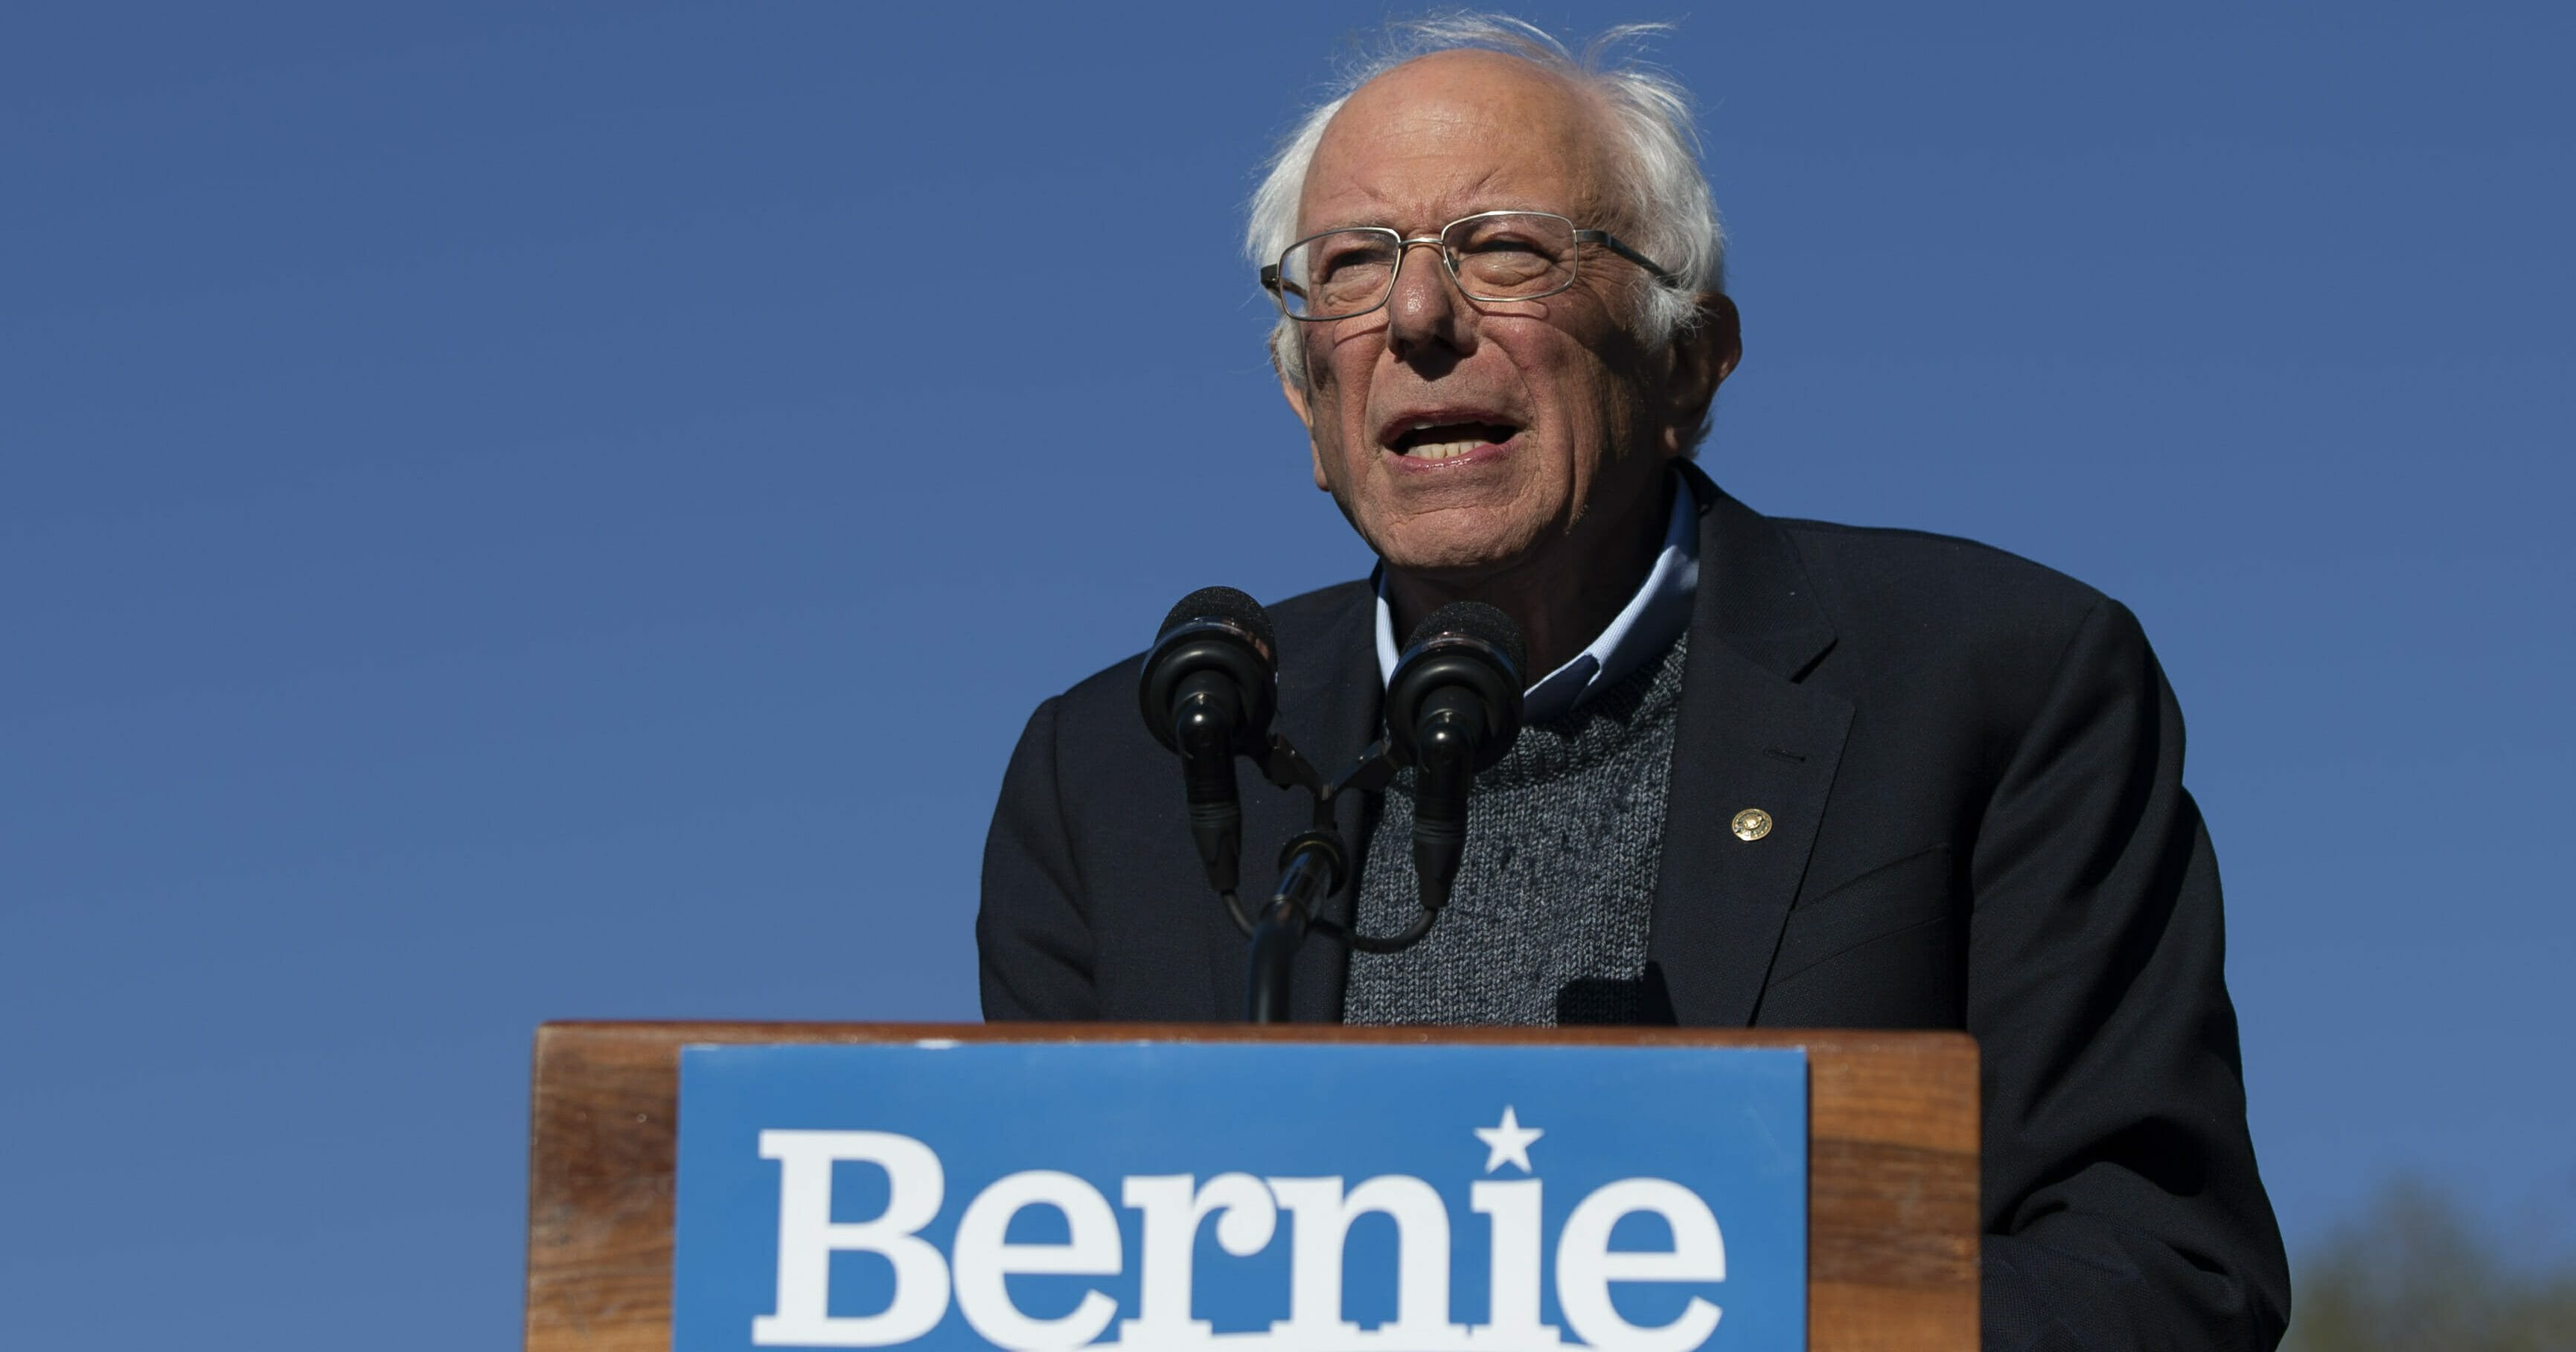 Democratic presidential candidate Sen. Bernie Sanders, I-Vt., speaks to supporters during a rally Saturday, Oct. 19, 2019, in New York.